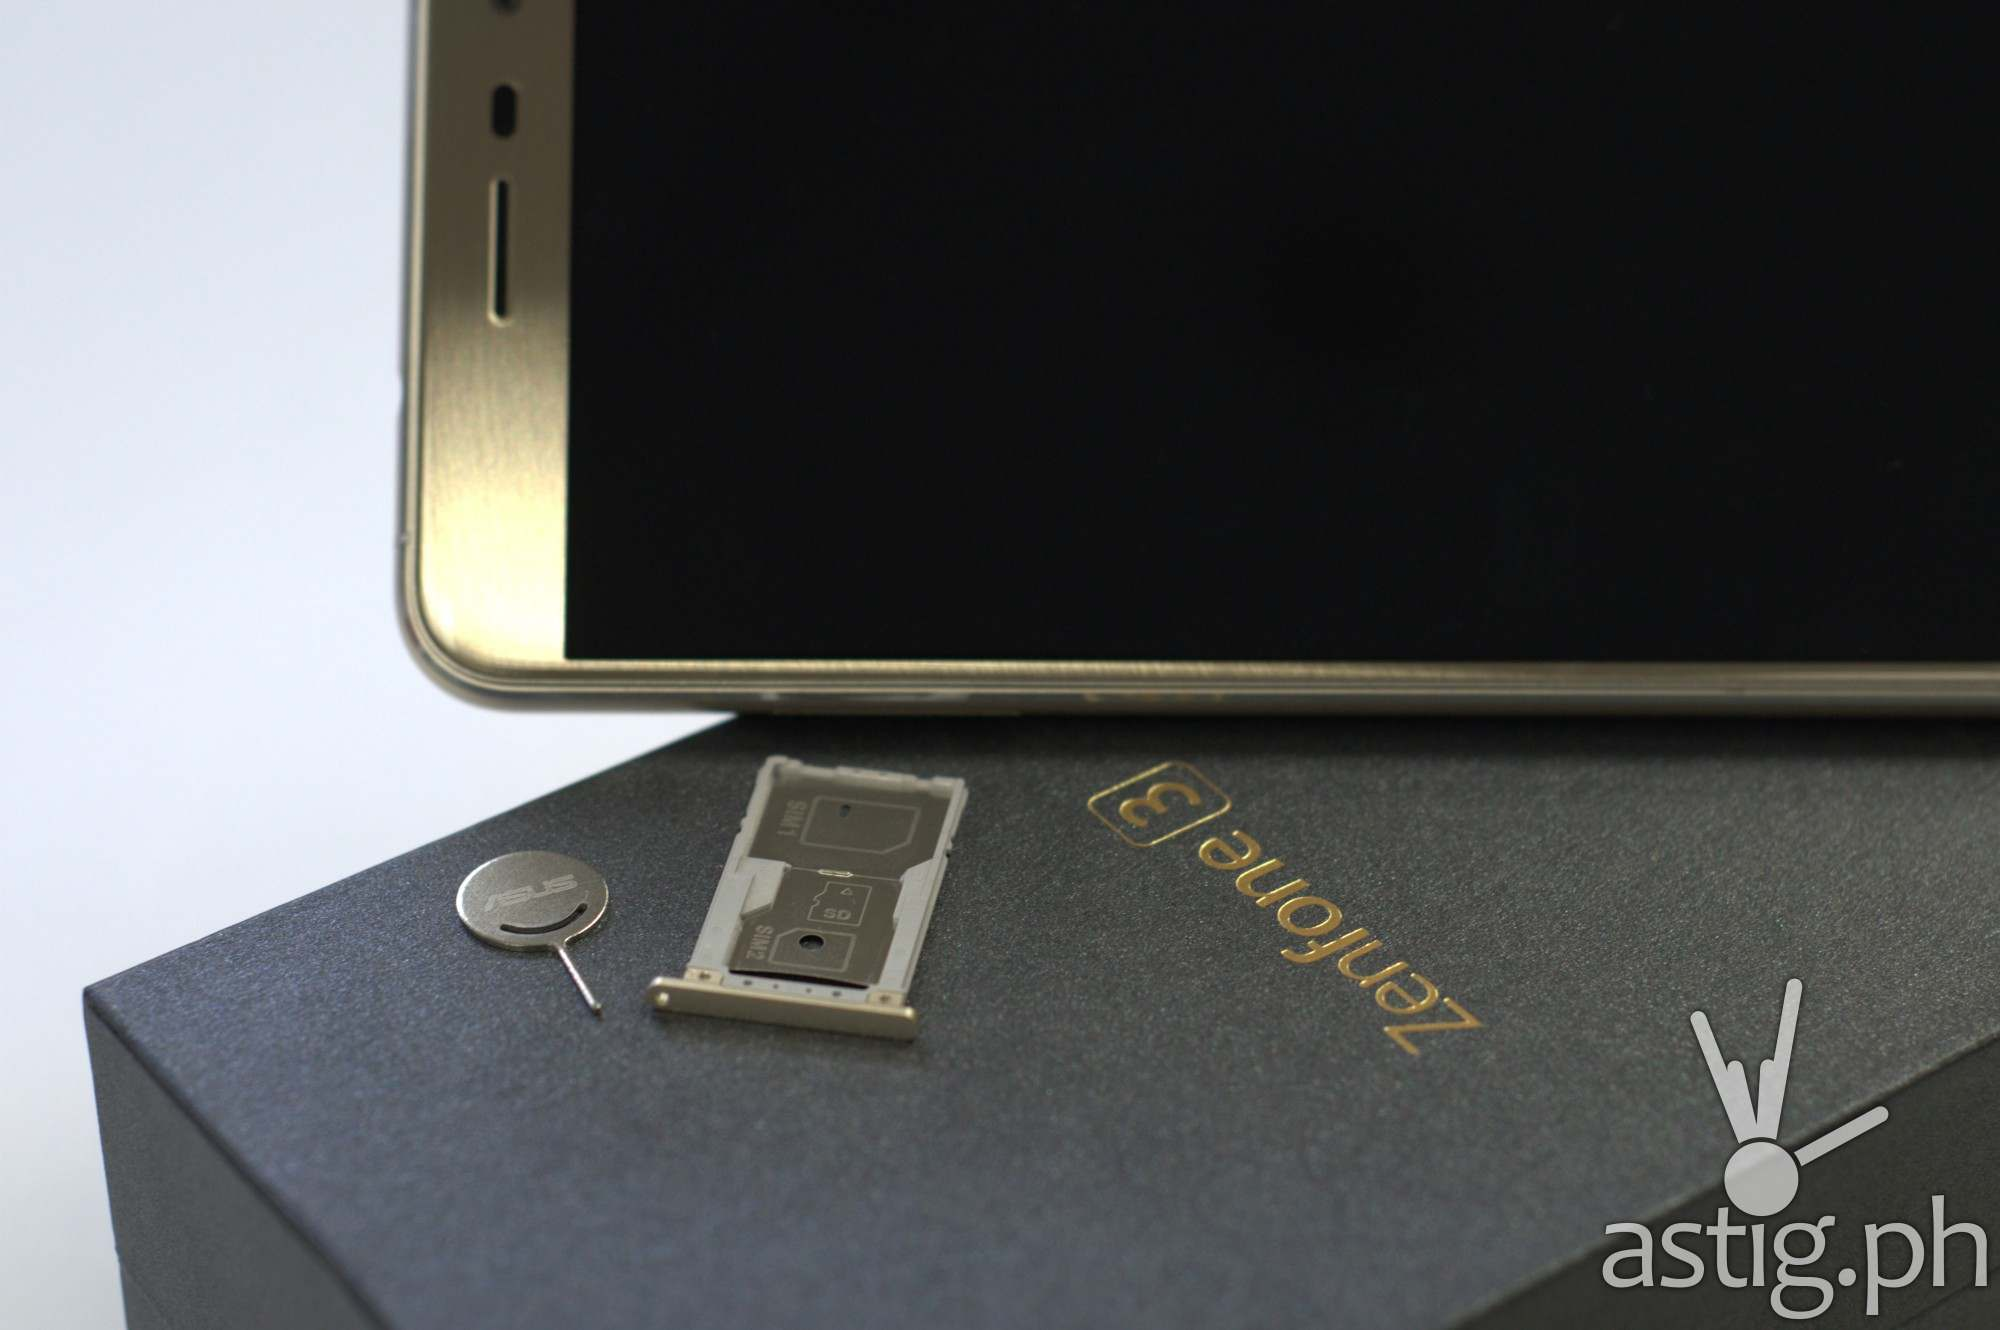 ASUS ZenFone 3 SIM tray and removal pin